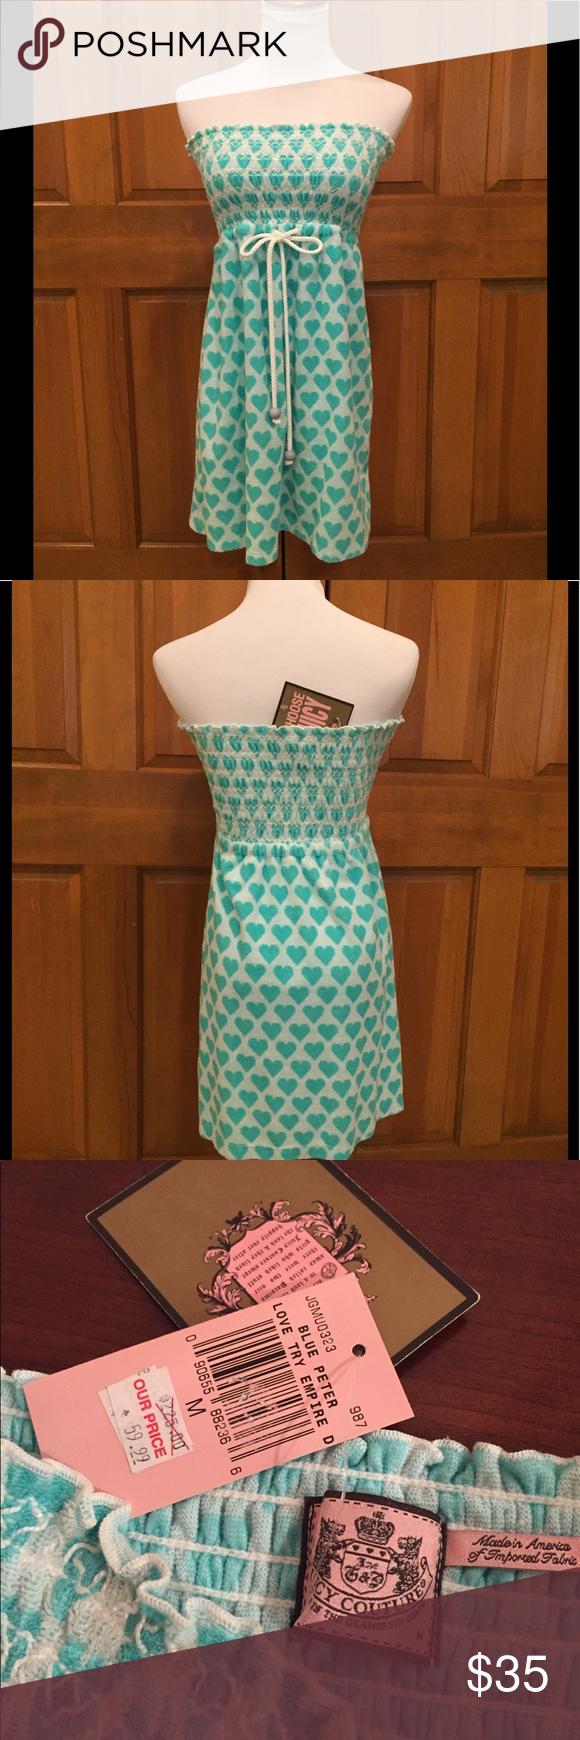 36241406a4fa Juicy Couture Terry Swim CoverUp or Dress NWT fabulous strapless terry  cloth dress or swim coverup